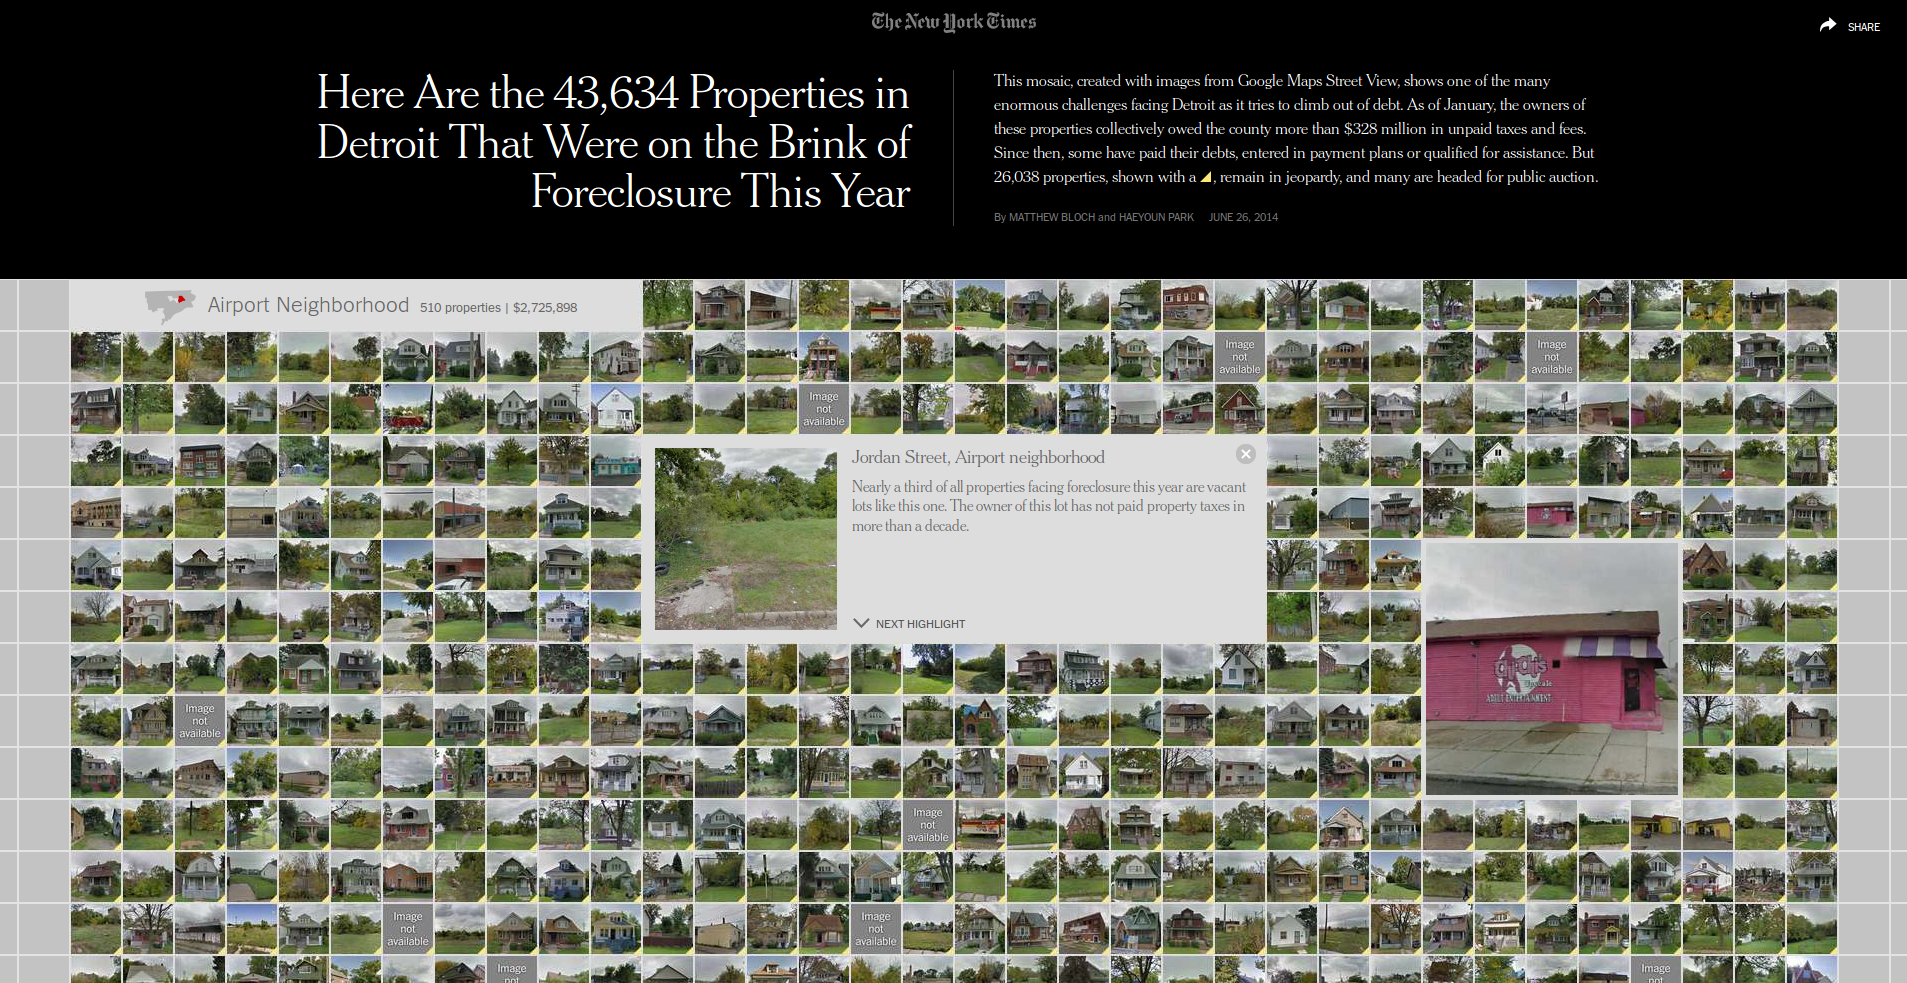 Here Are the 43,634 Properties in Detroit That Were on the Brink of Foreclosure This Year